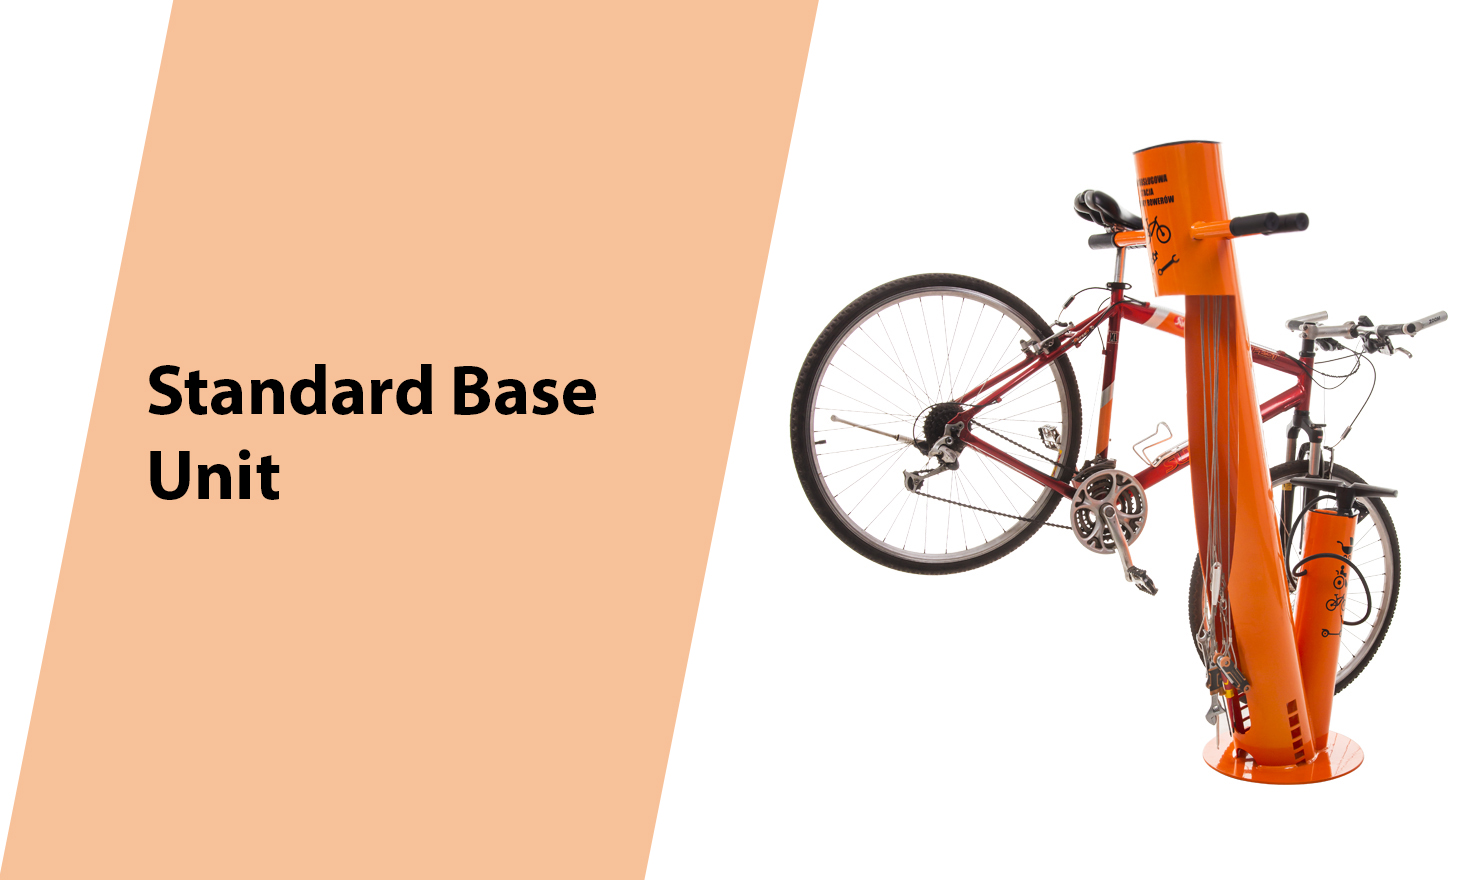 Bike Service Station - Standard Base Unit